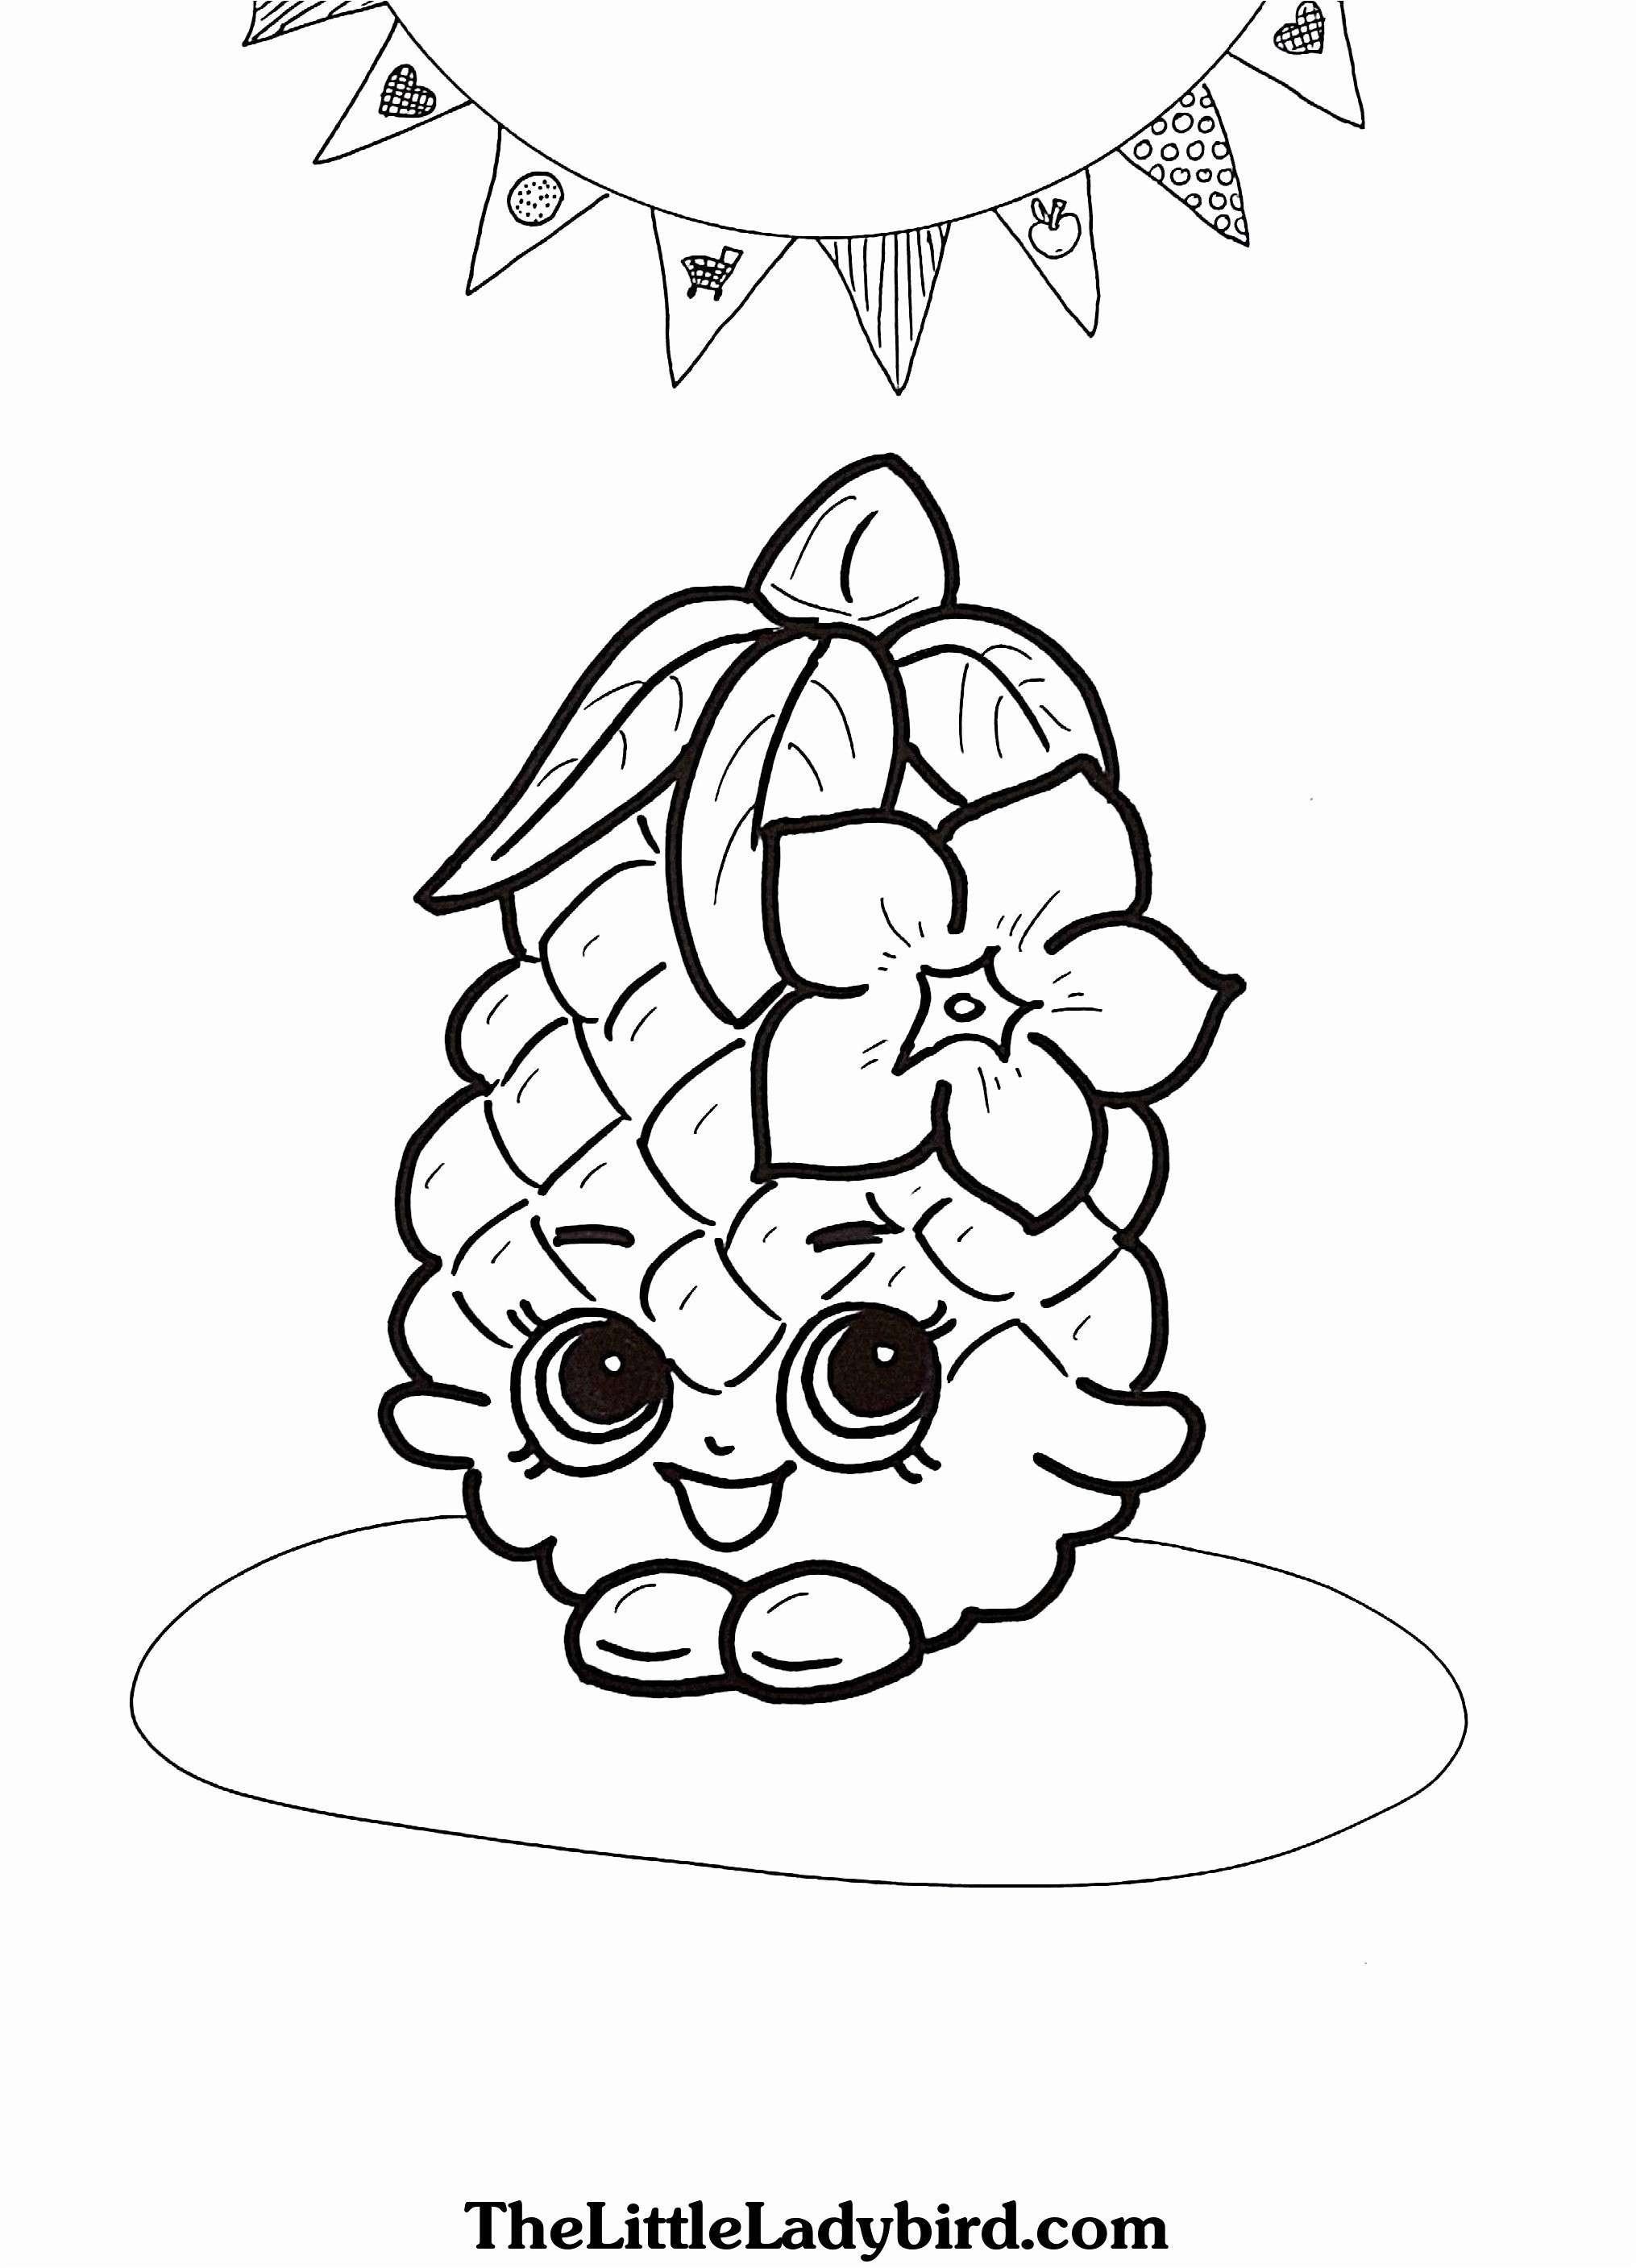 Coloring Pages Of Christmas Trees  Collection 16m - Free For kids